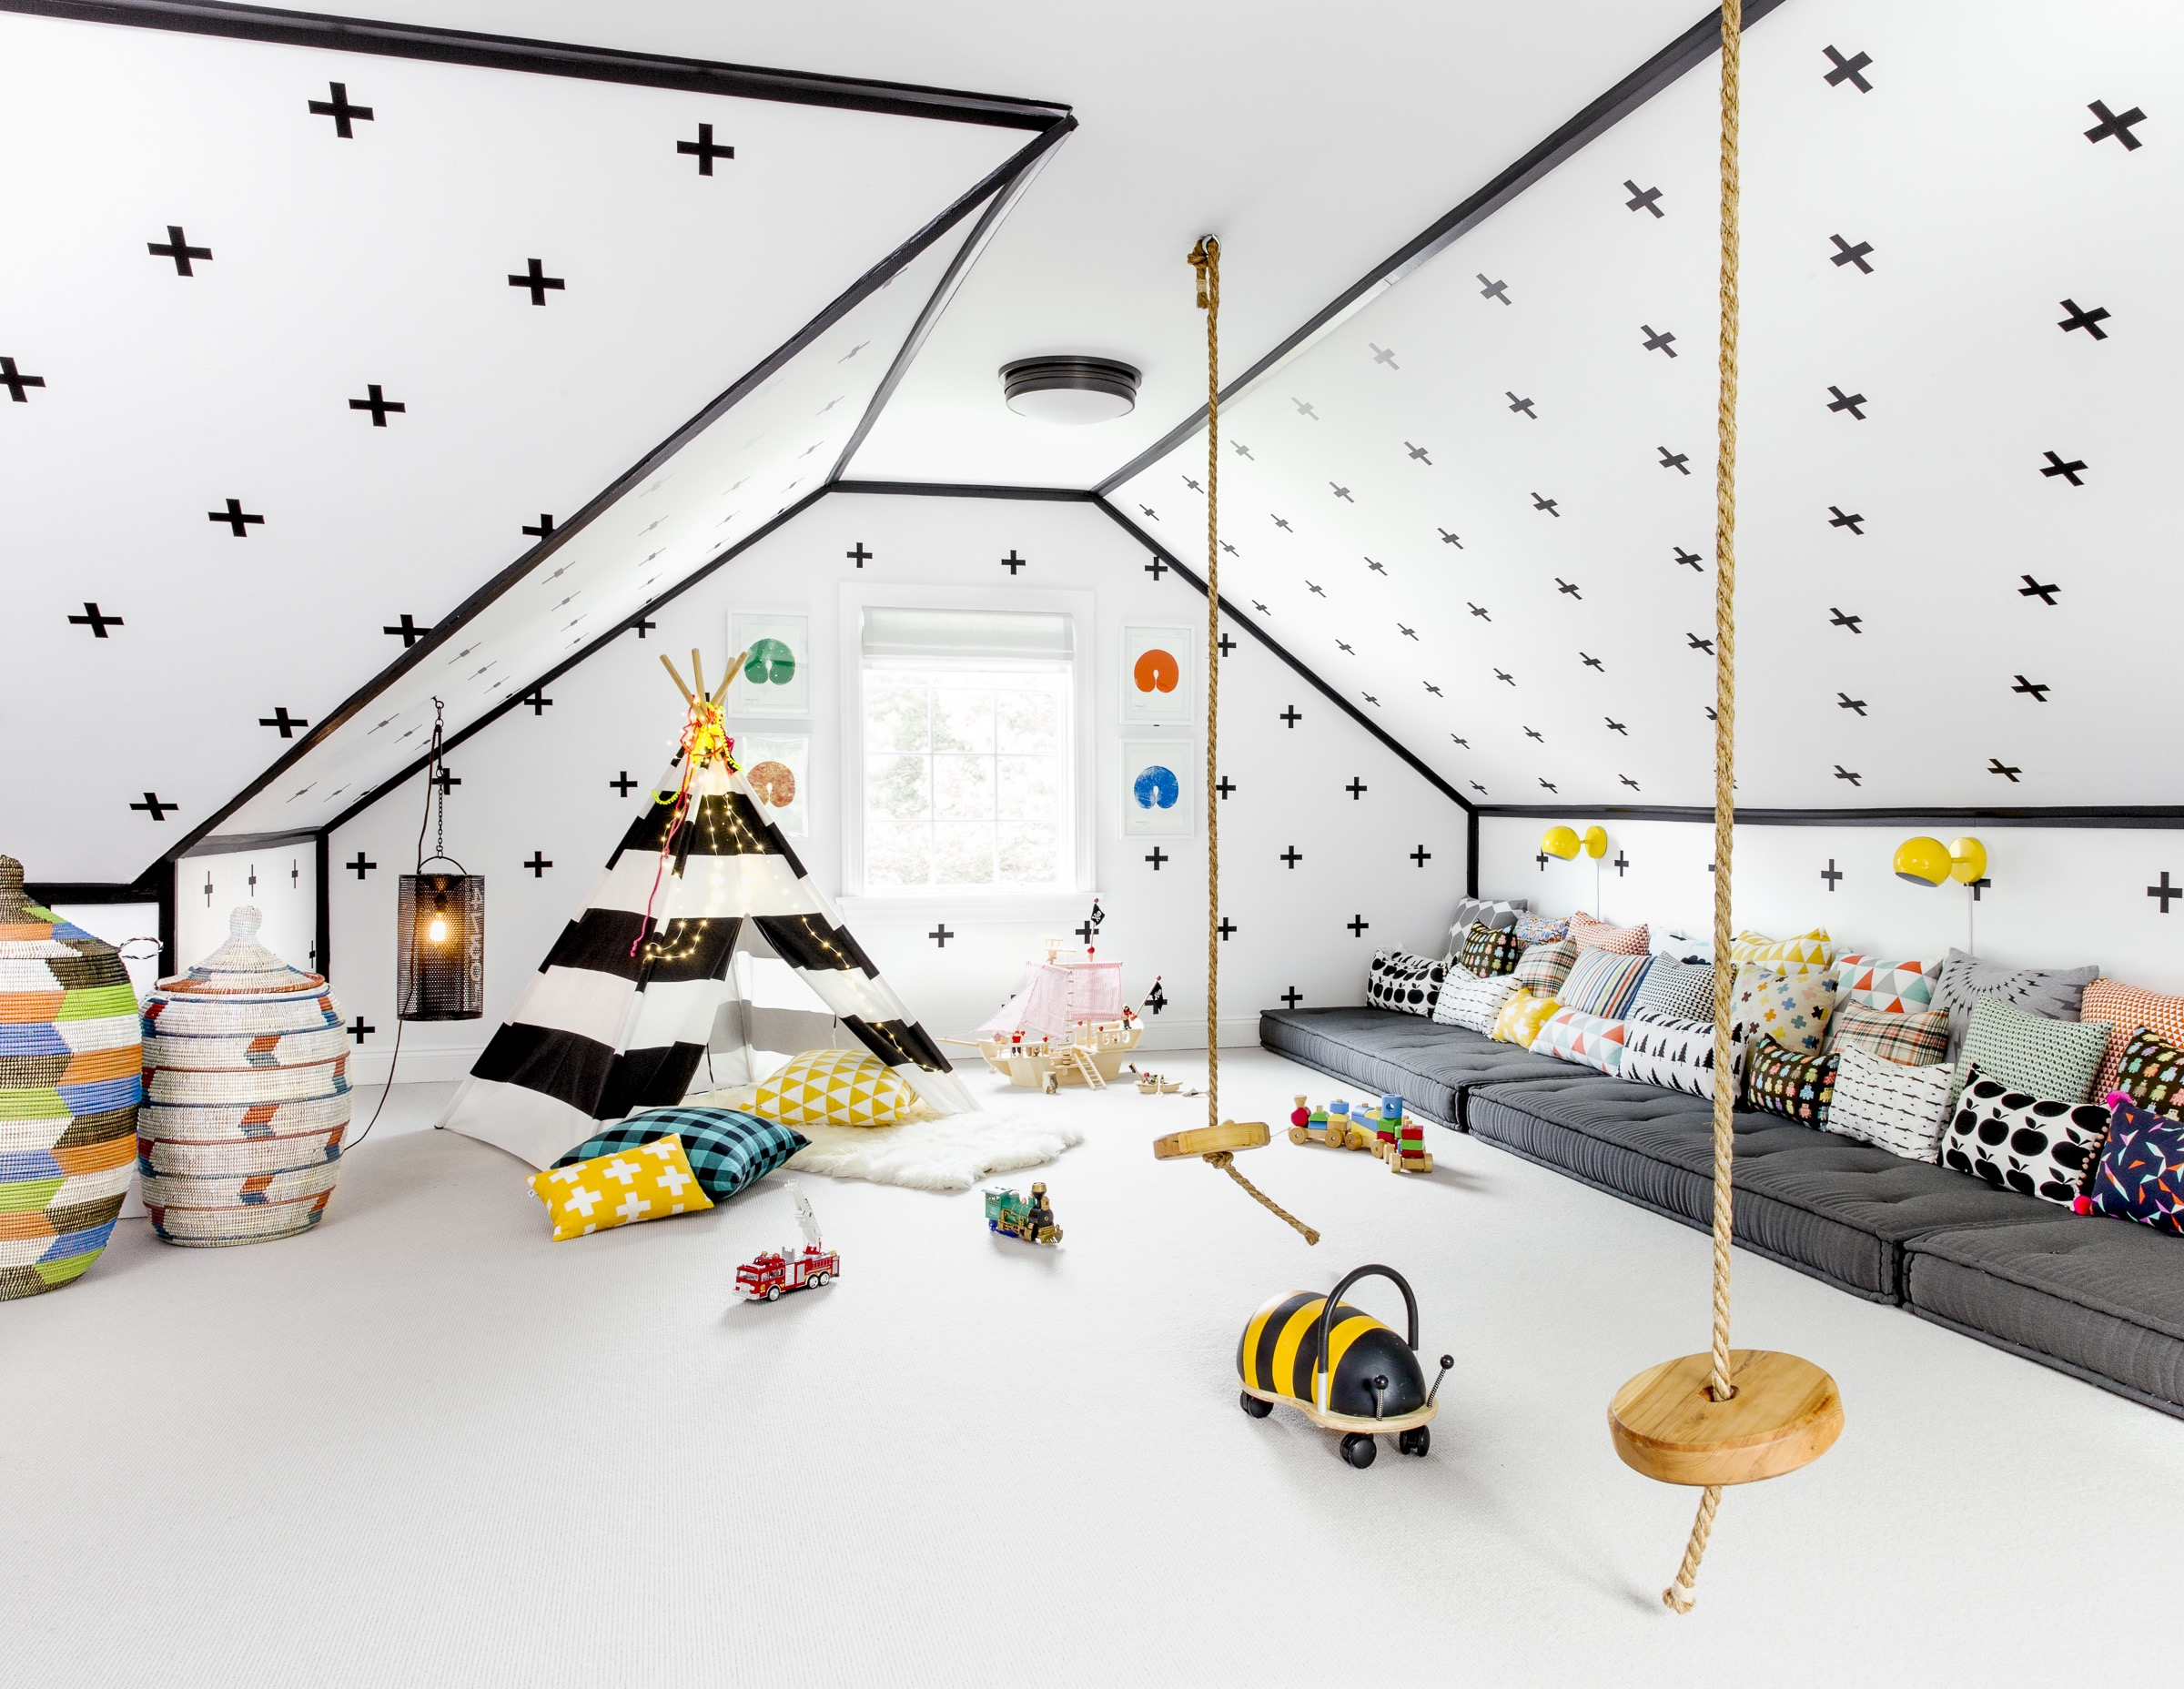 White Theme Playroom Features Teepee, Rope Swings And Floor Cushions (Image 29 of 30)